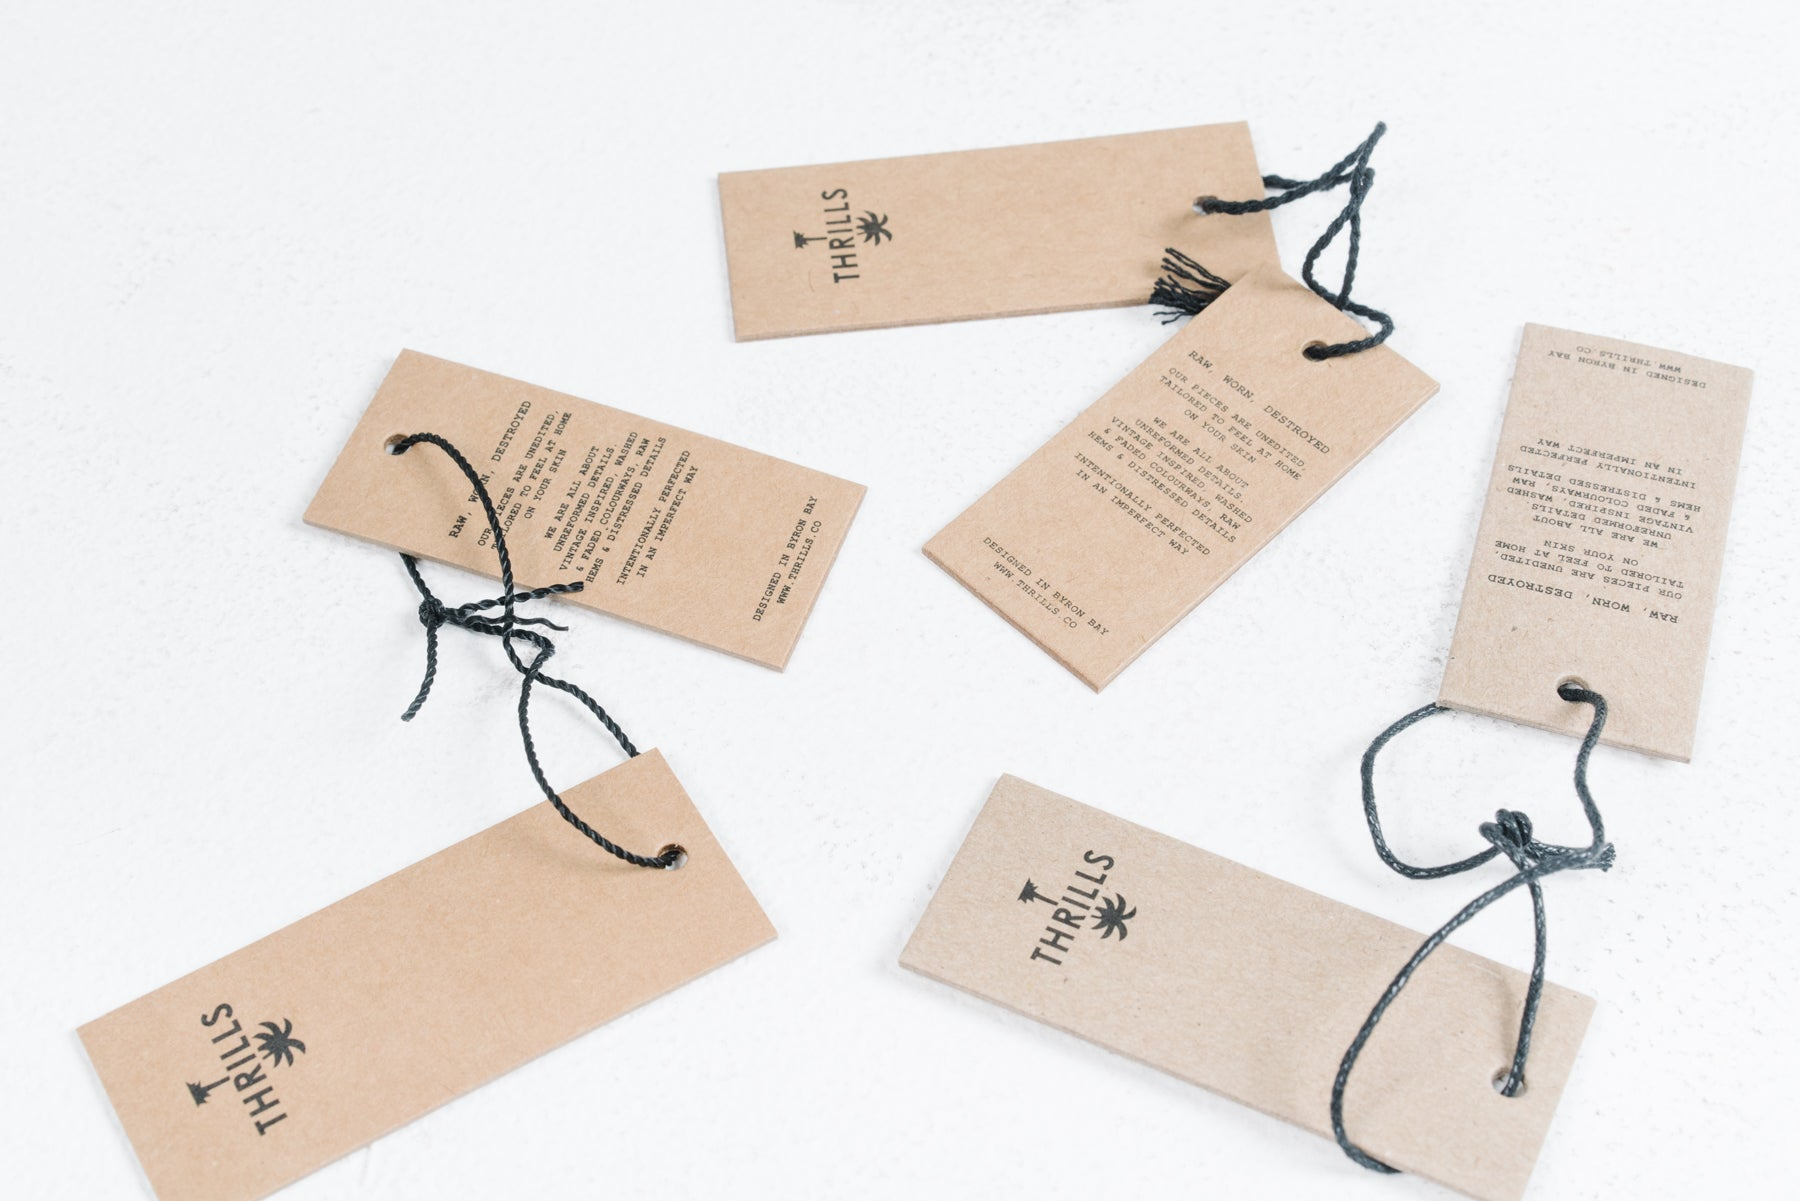 Thrills Recycled Cardboard Hangers